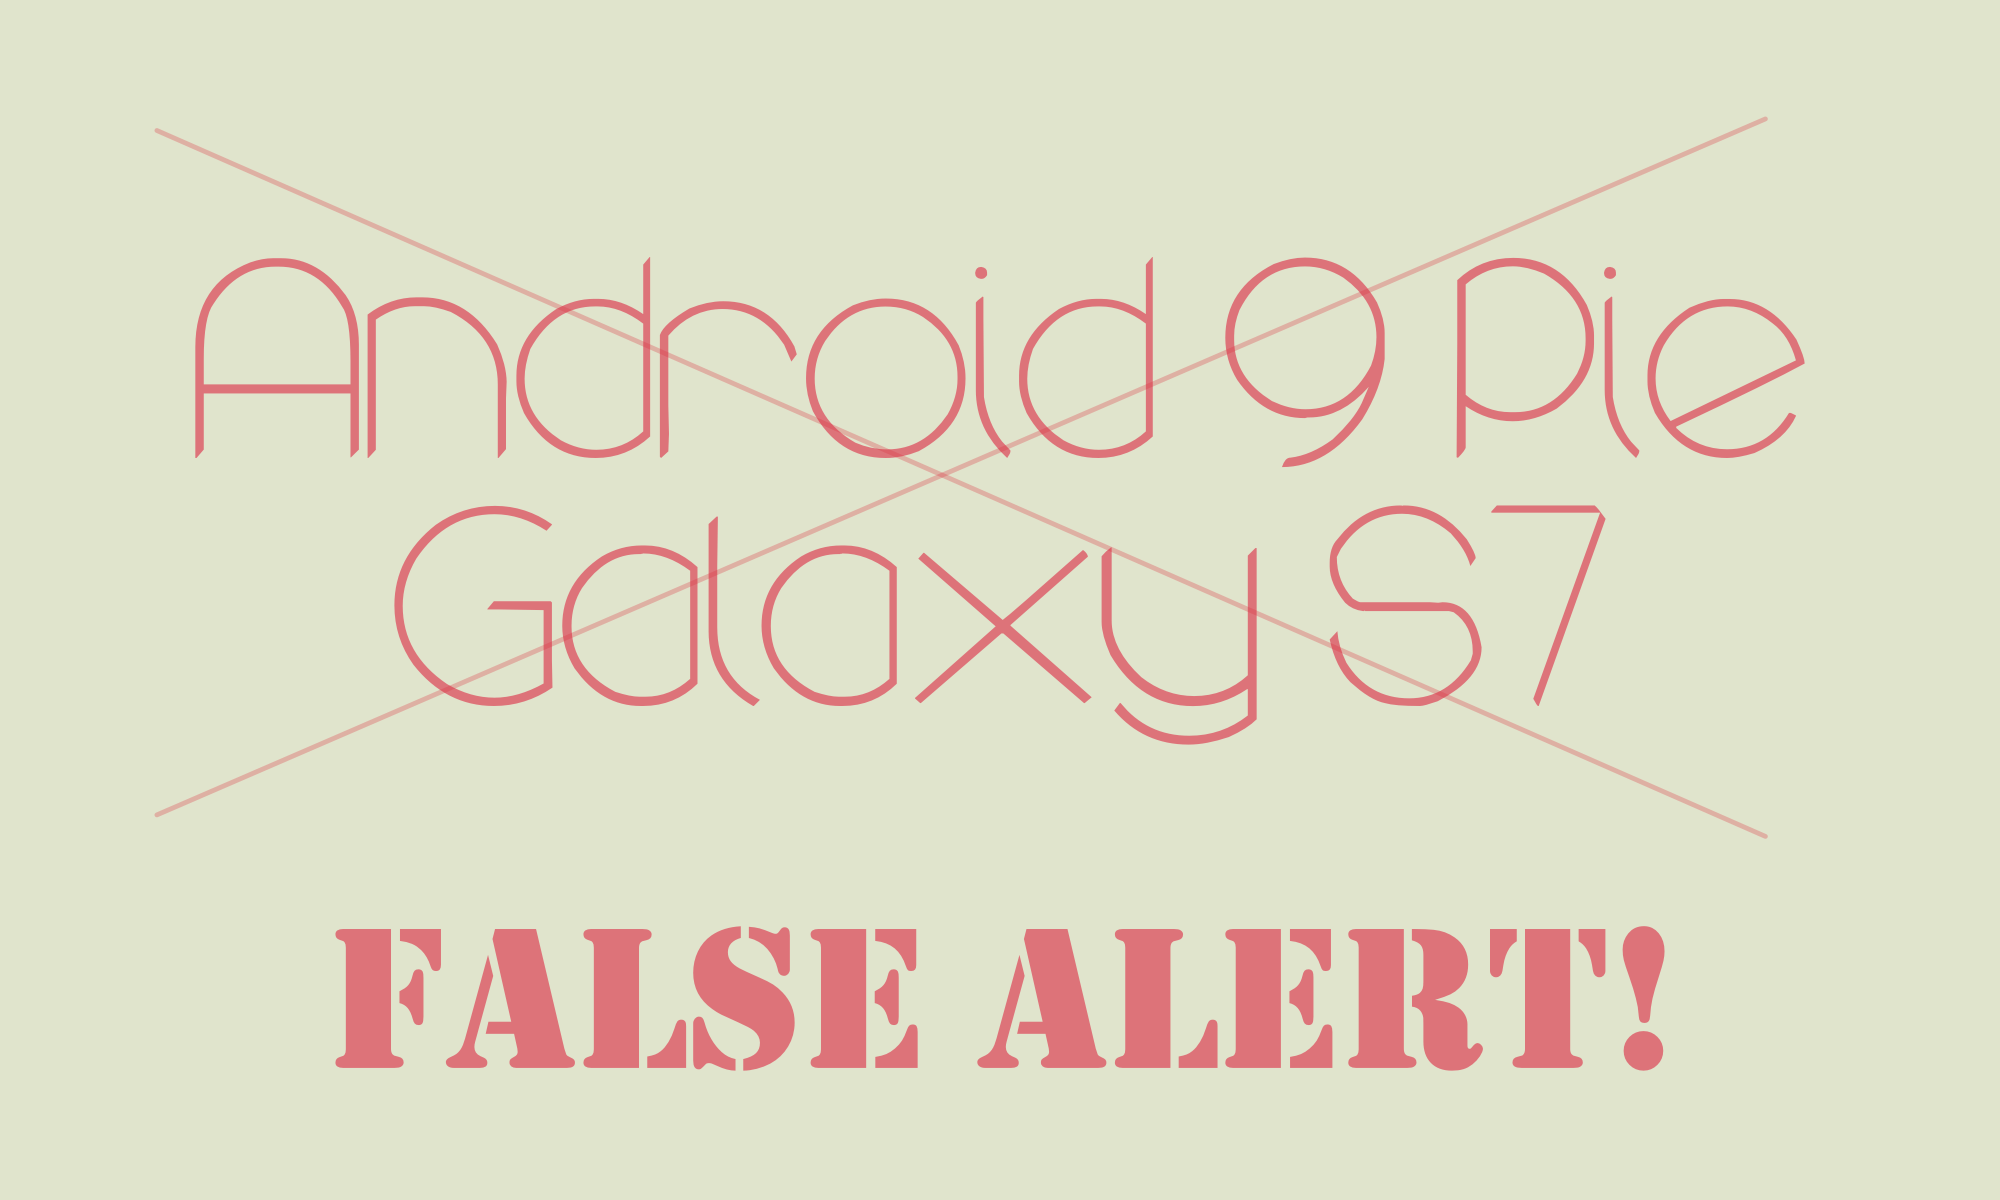 Galaxy-s7-Android-9-Pie-fail